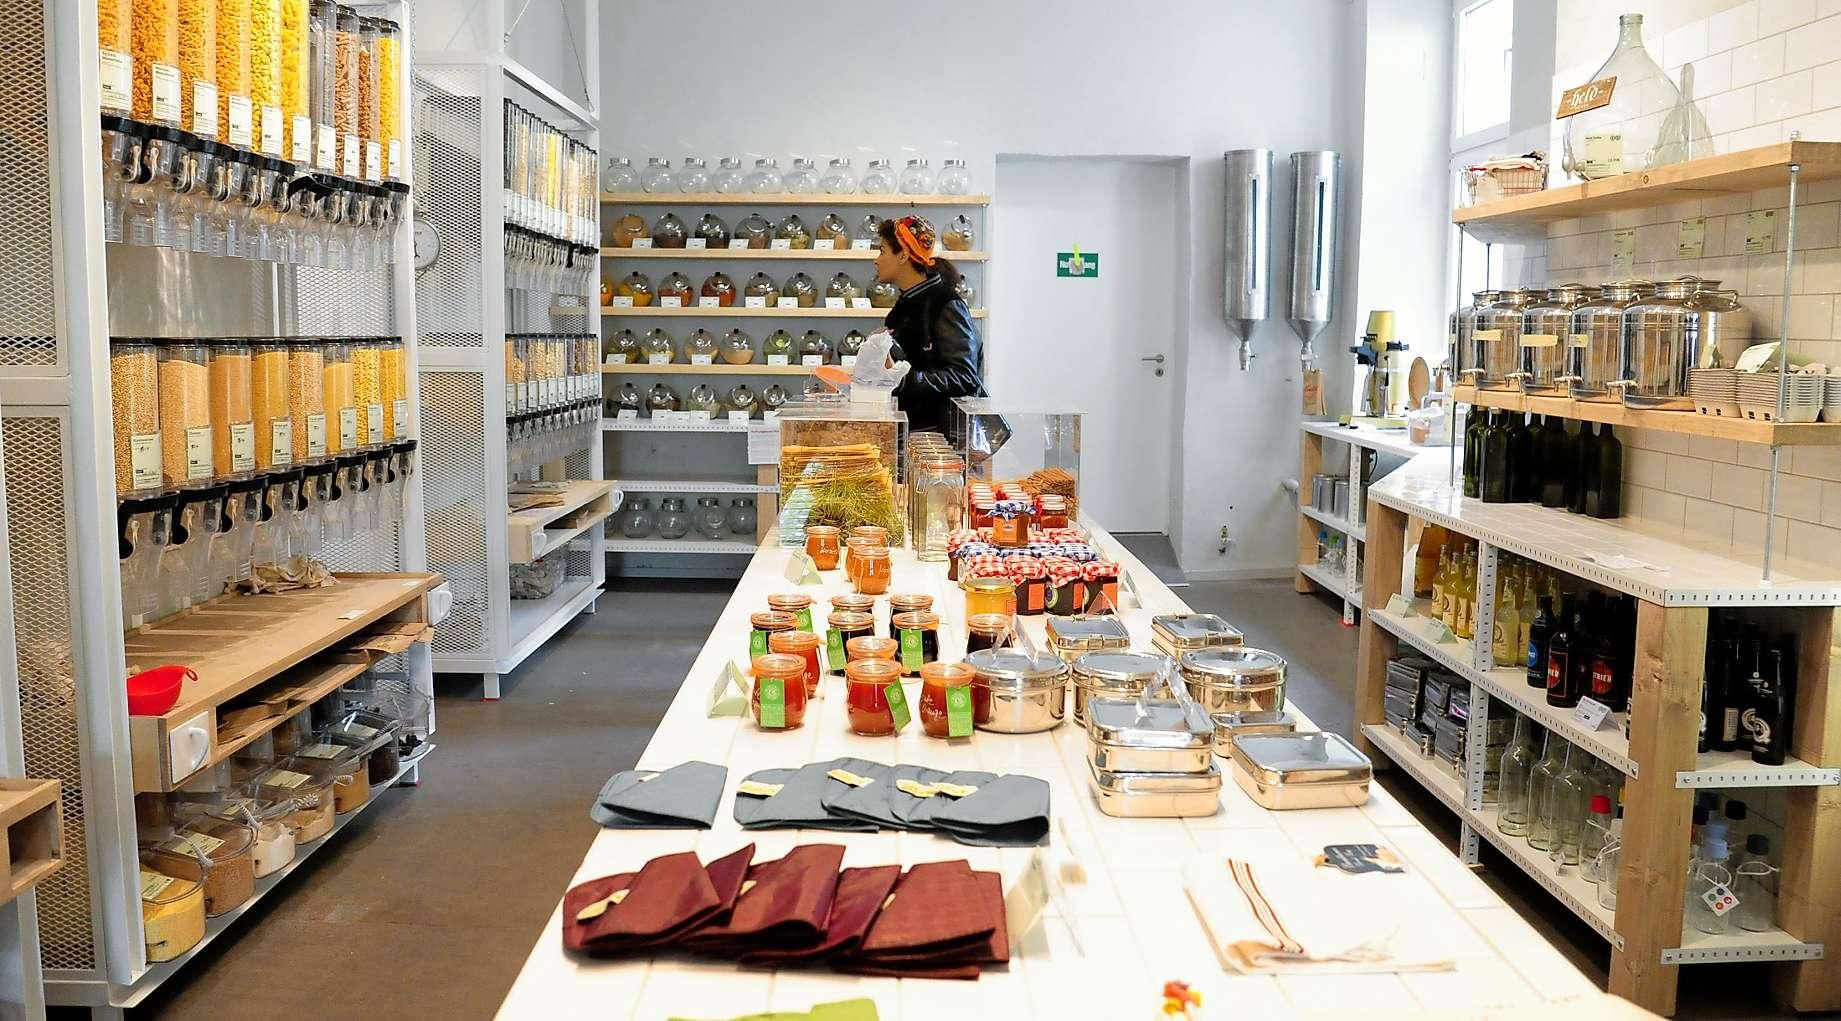 Original Unverpackt German For Genuinely Unpackaged Is The First Supermarket In Berlin Which Focuses On The Sale Of Loose Prod Idee Deco Maison Rayonnage